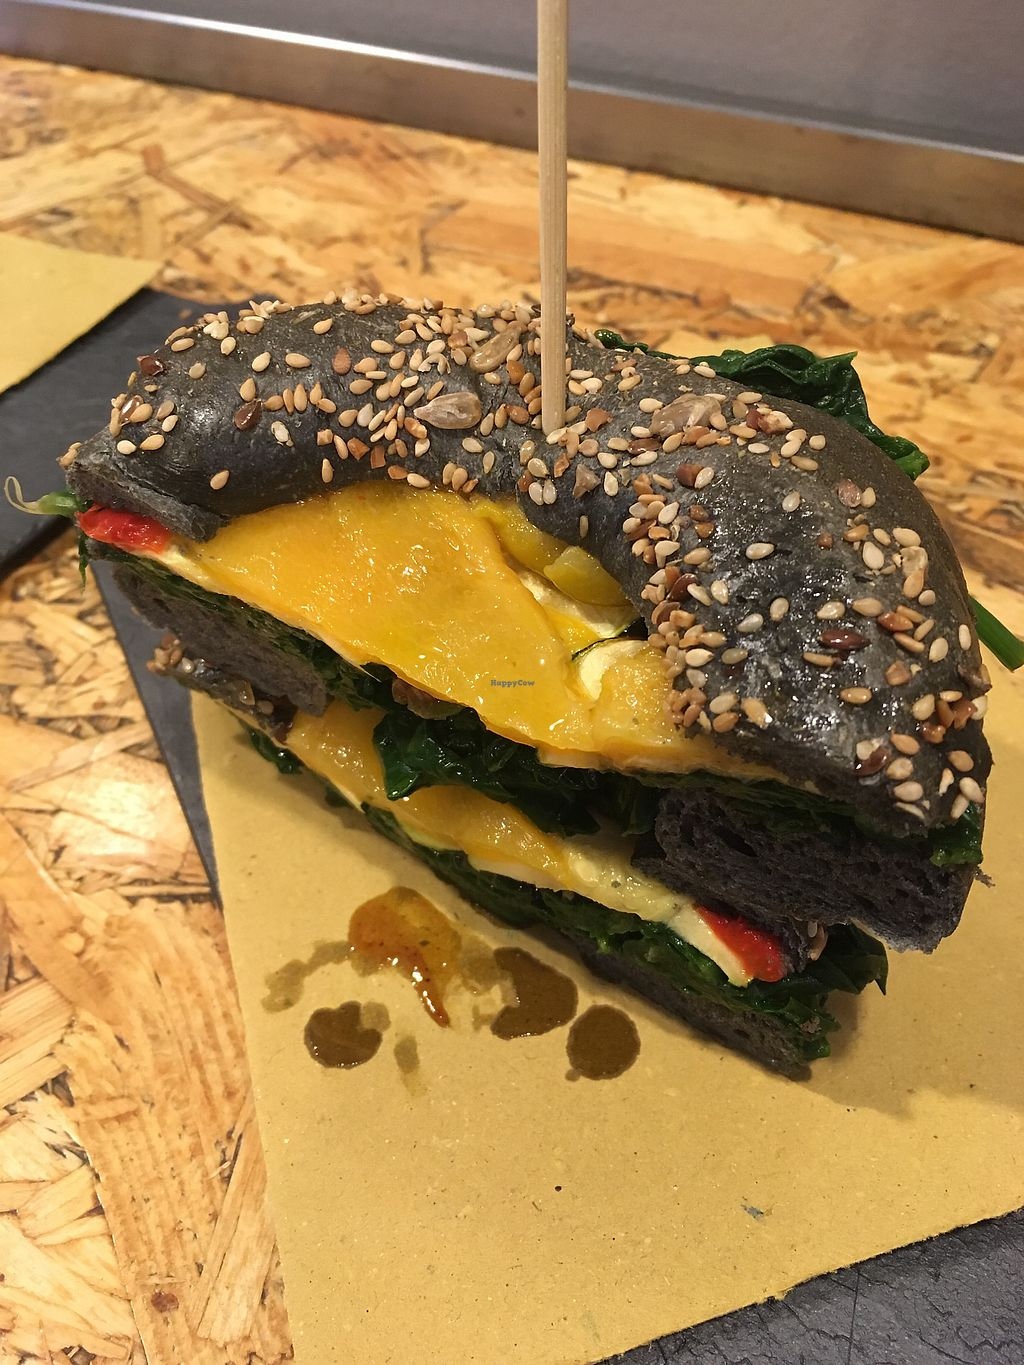 """Photo of 1610 Bagel Torino  by <a href=""""/members/profile/hokusai77"""">hokusai77</a> <br/>Charcoal bagel with grilled vegetables <br/> November 4, 2017  - <a href='/contact/abuse/image/84652/321720'>Report</a>"""